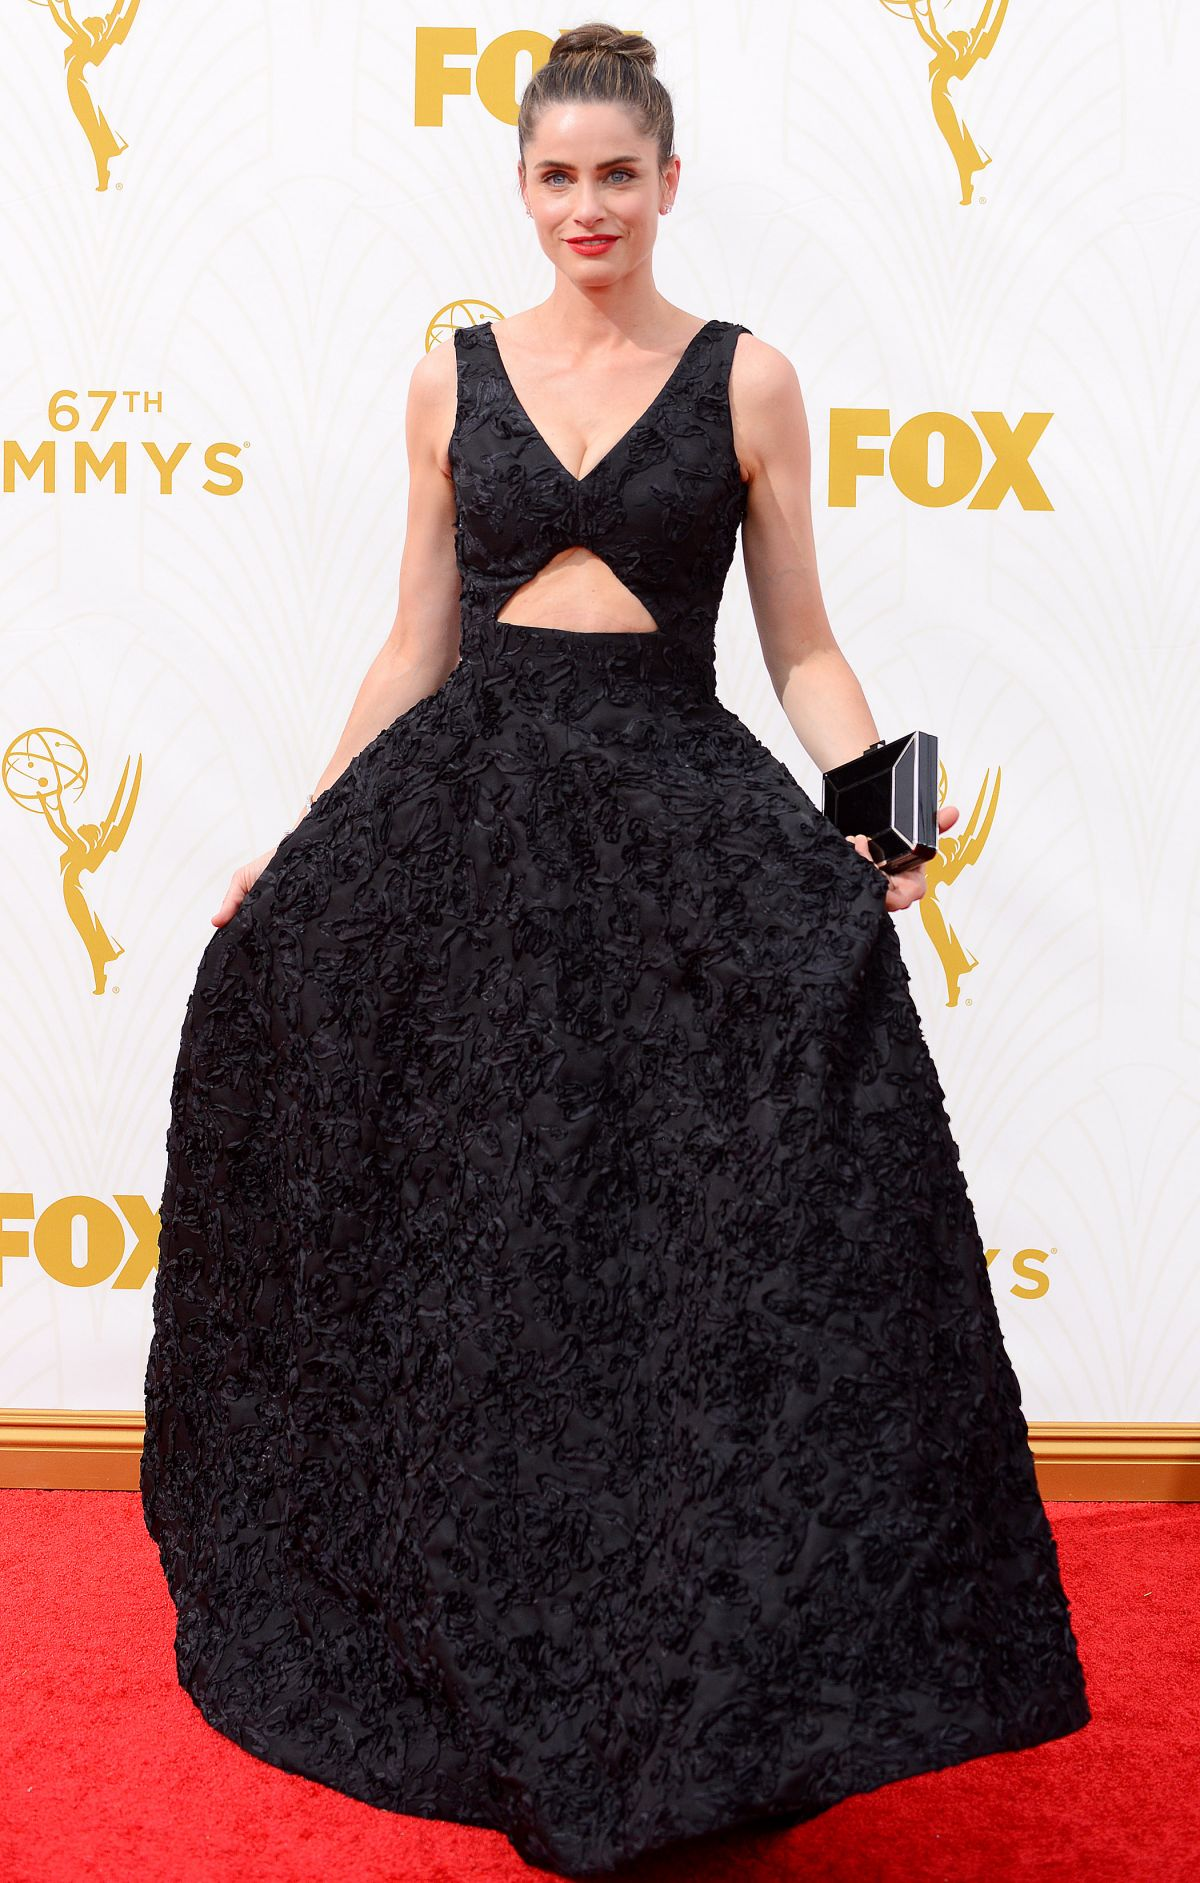 amanda-peet-at-2015-emmy-awards-in-los-angeles-09-20-2015_1